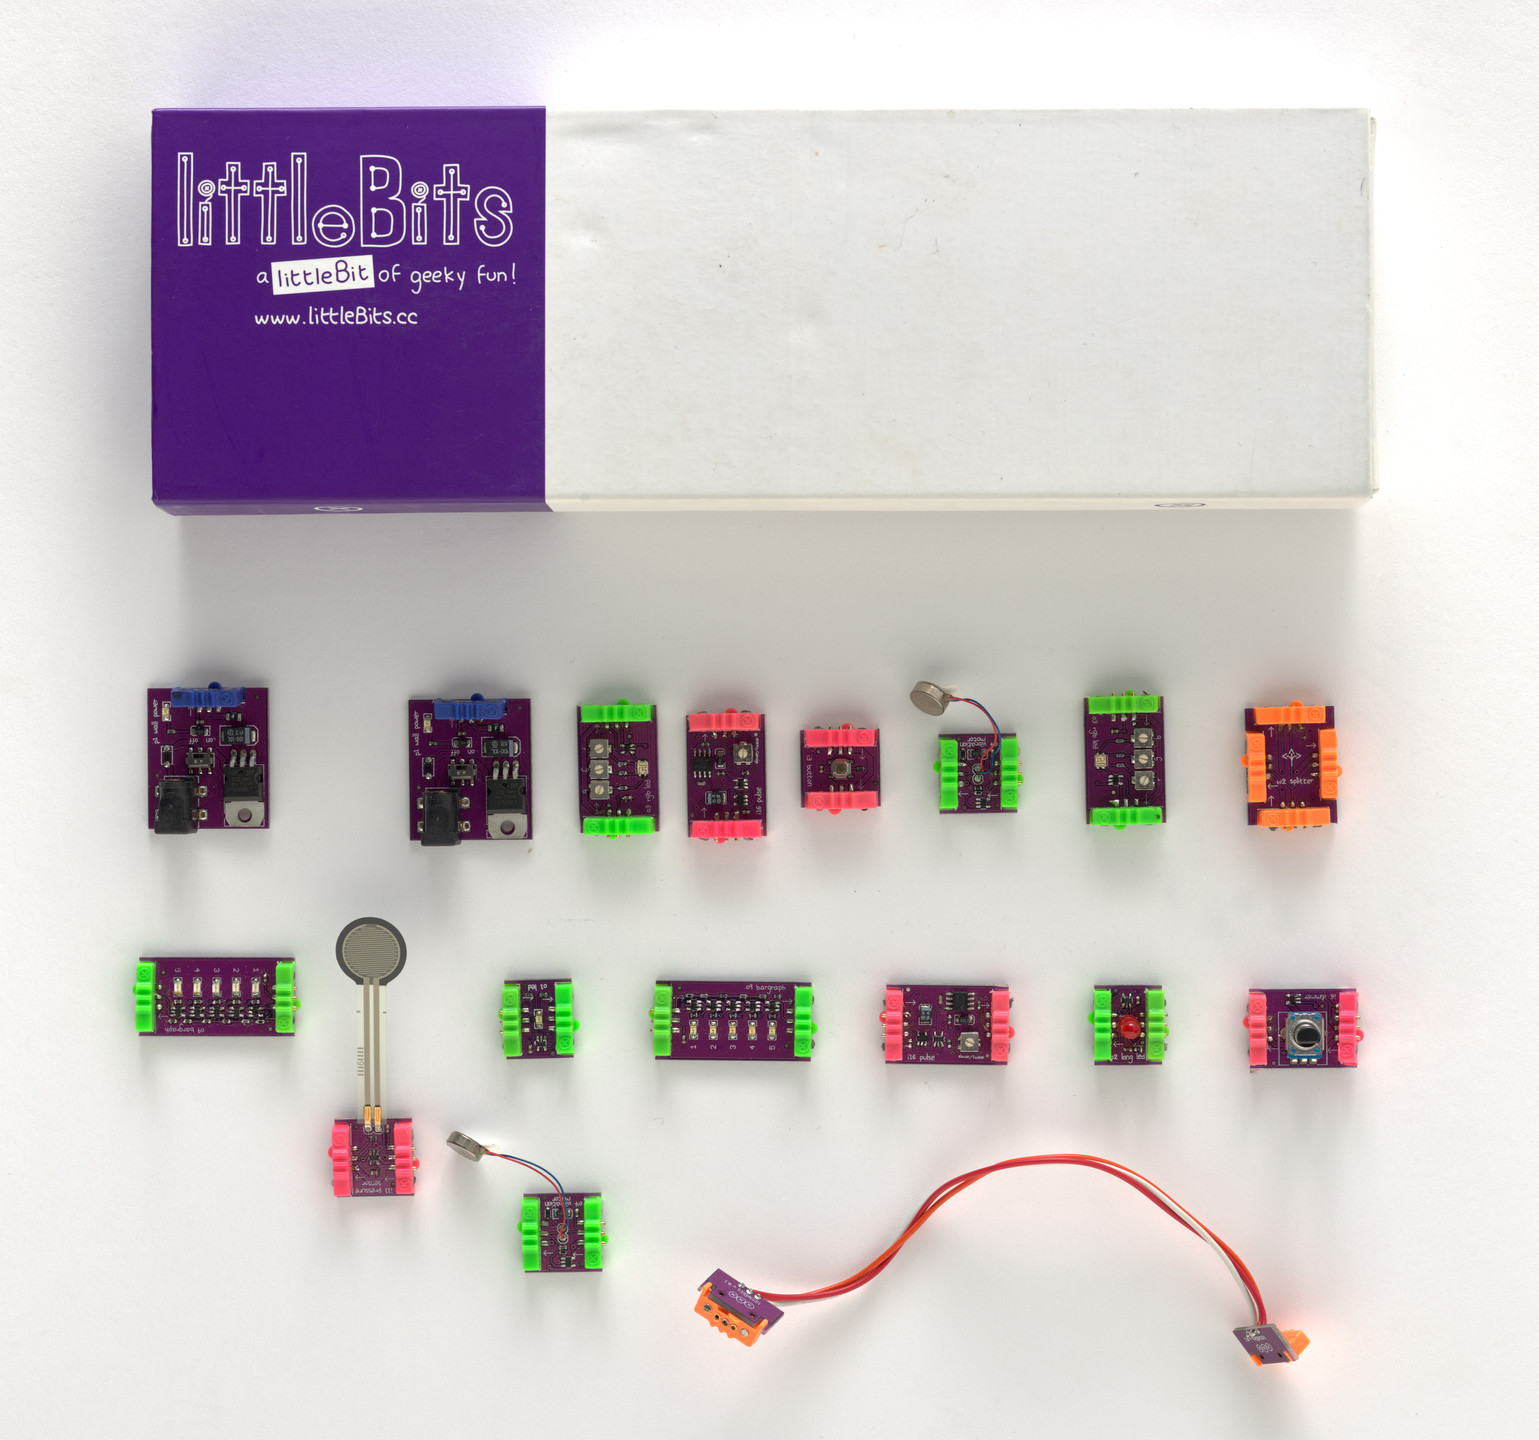 Ayah Bdeir. littleBits. 2008